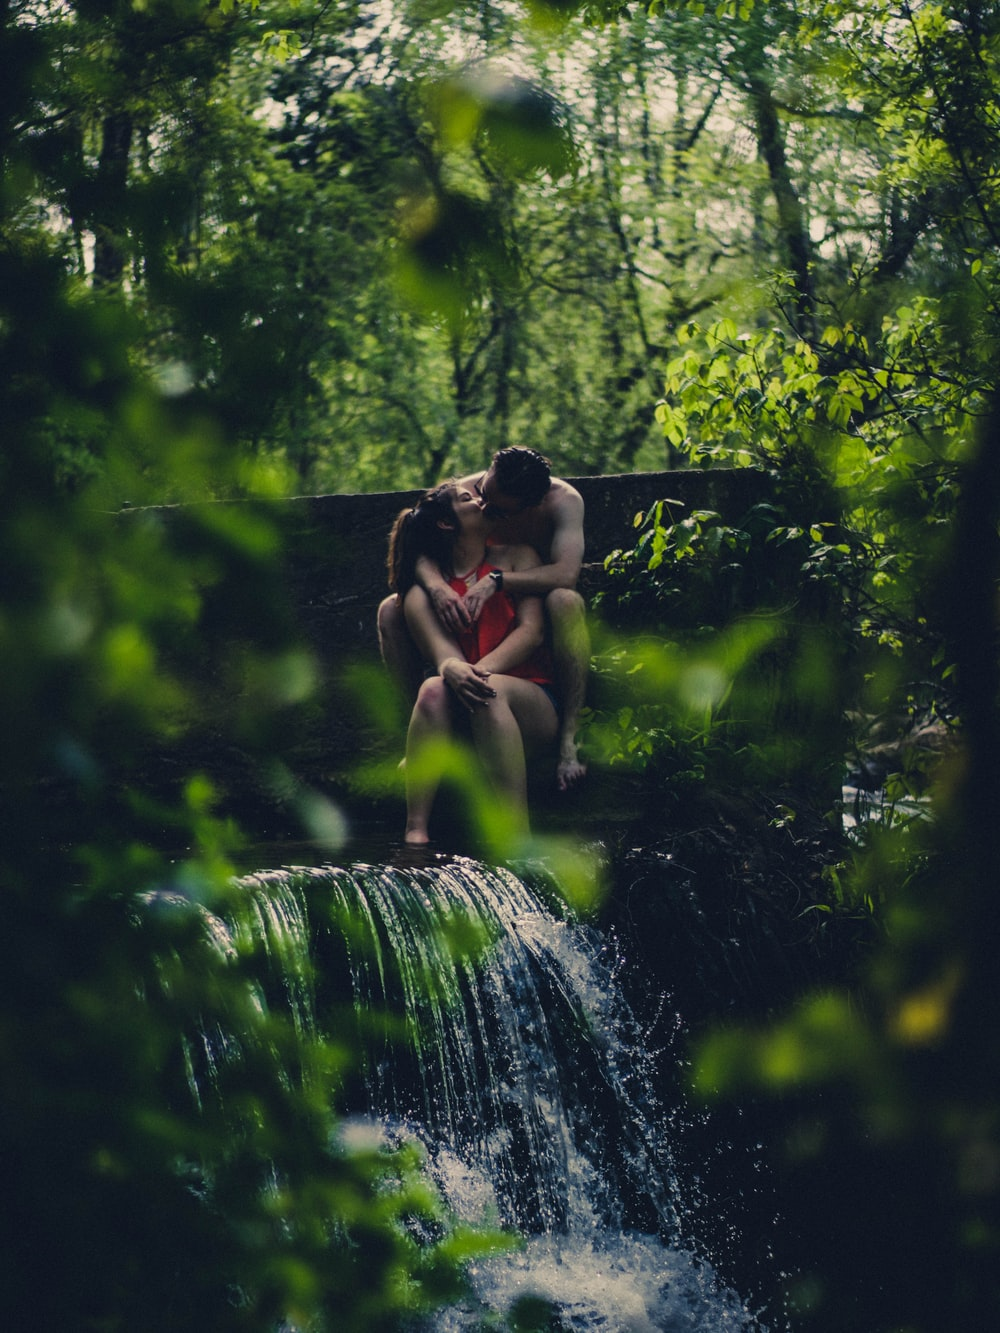 Tree, forest, person and human   HD photo by Hunter Newton ...